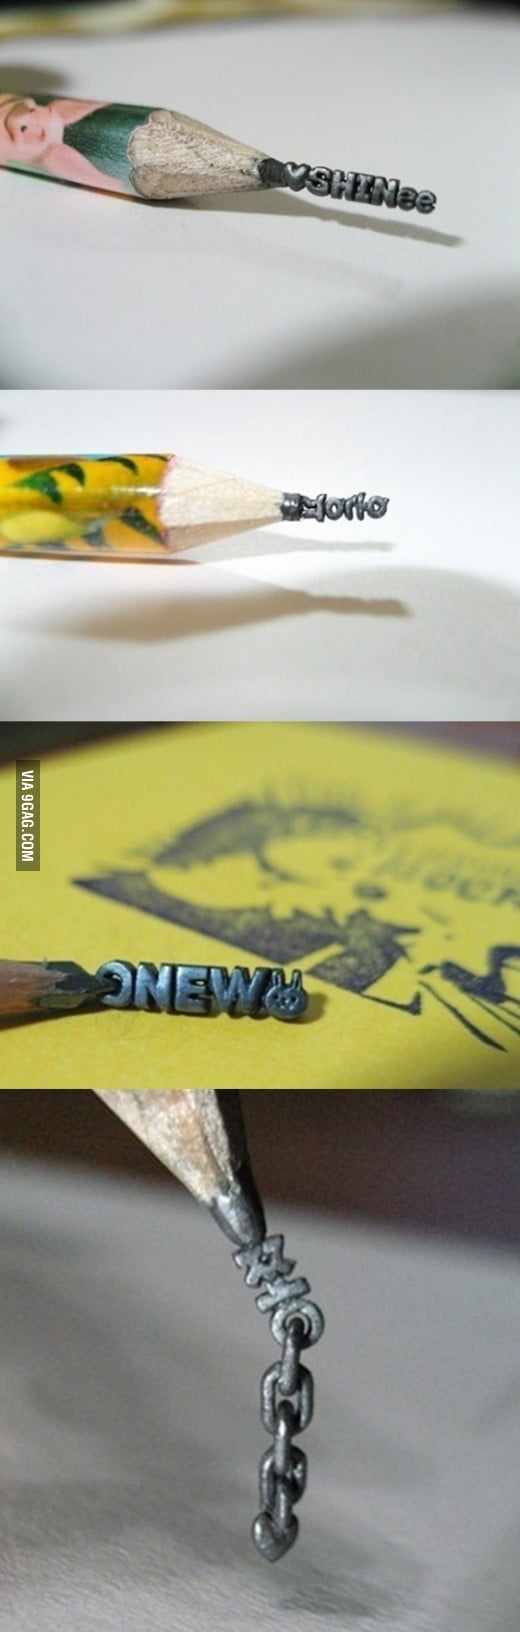 Pencil art lvl: Korean